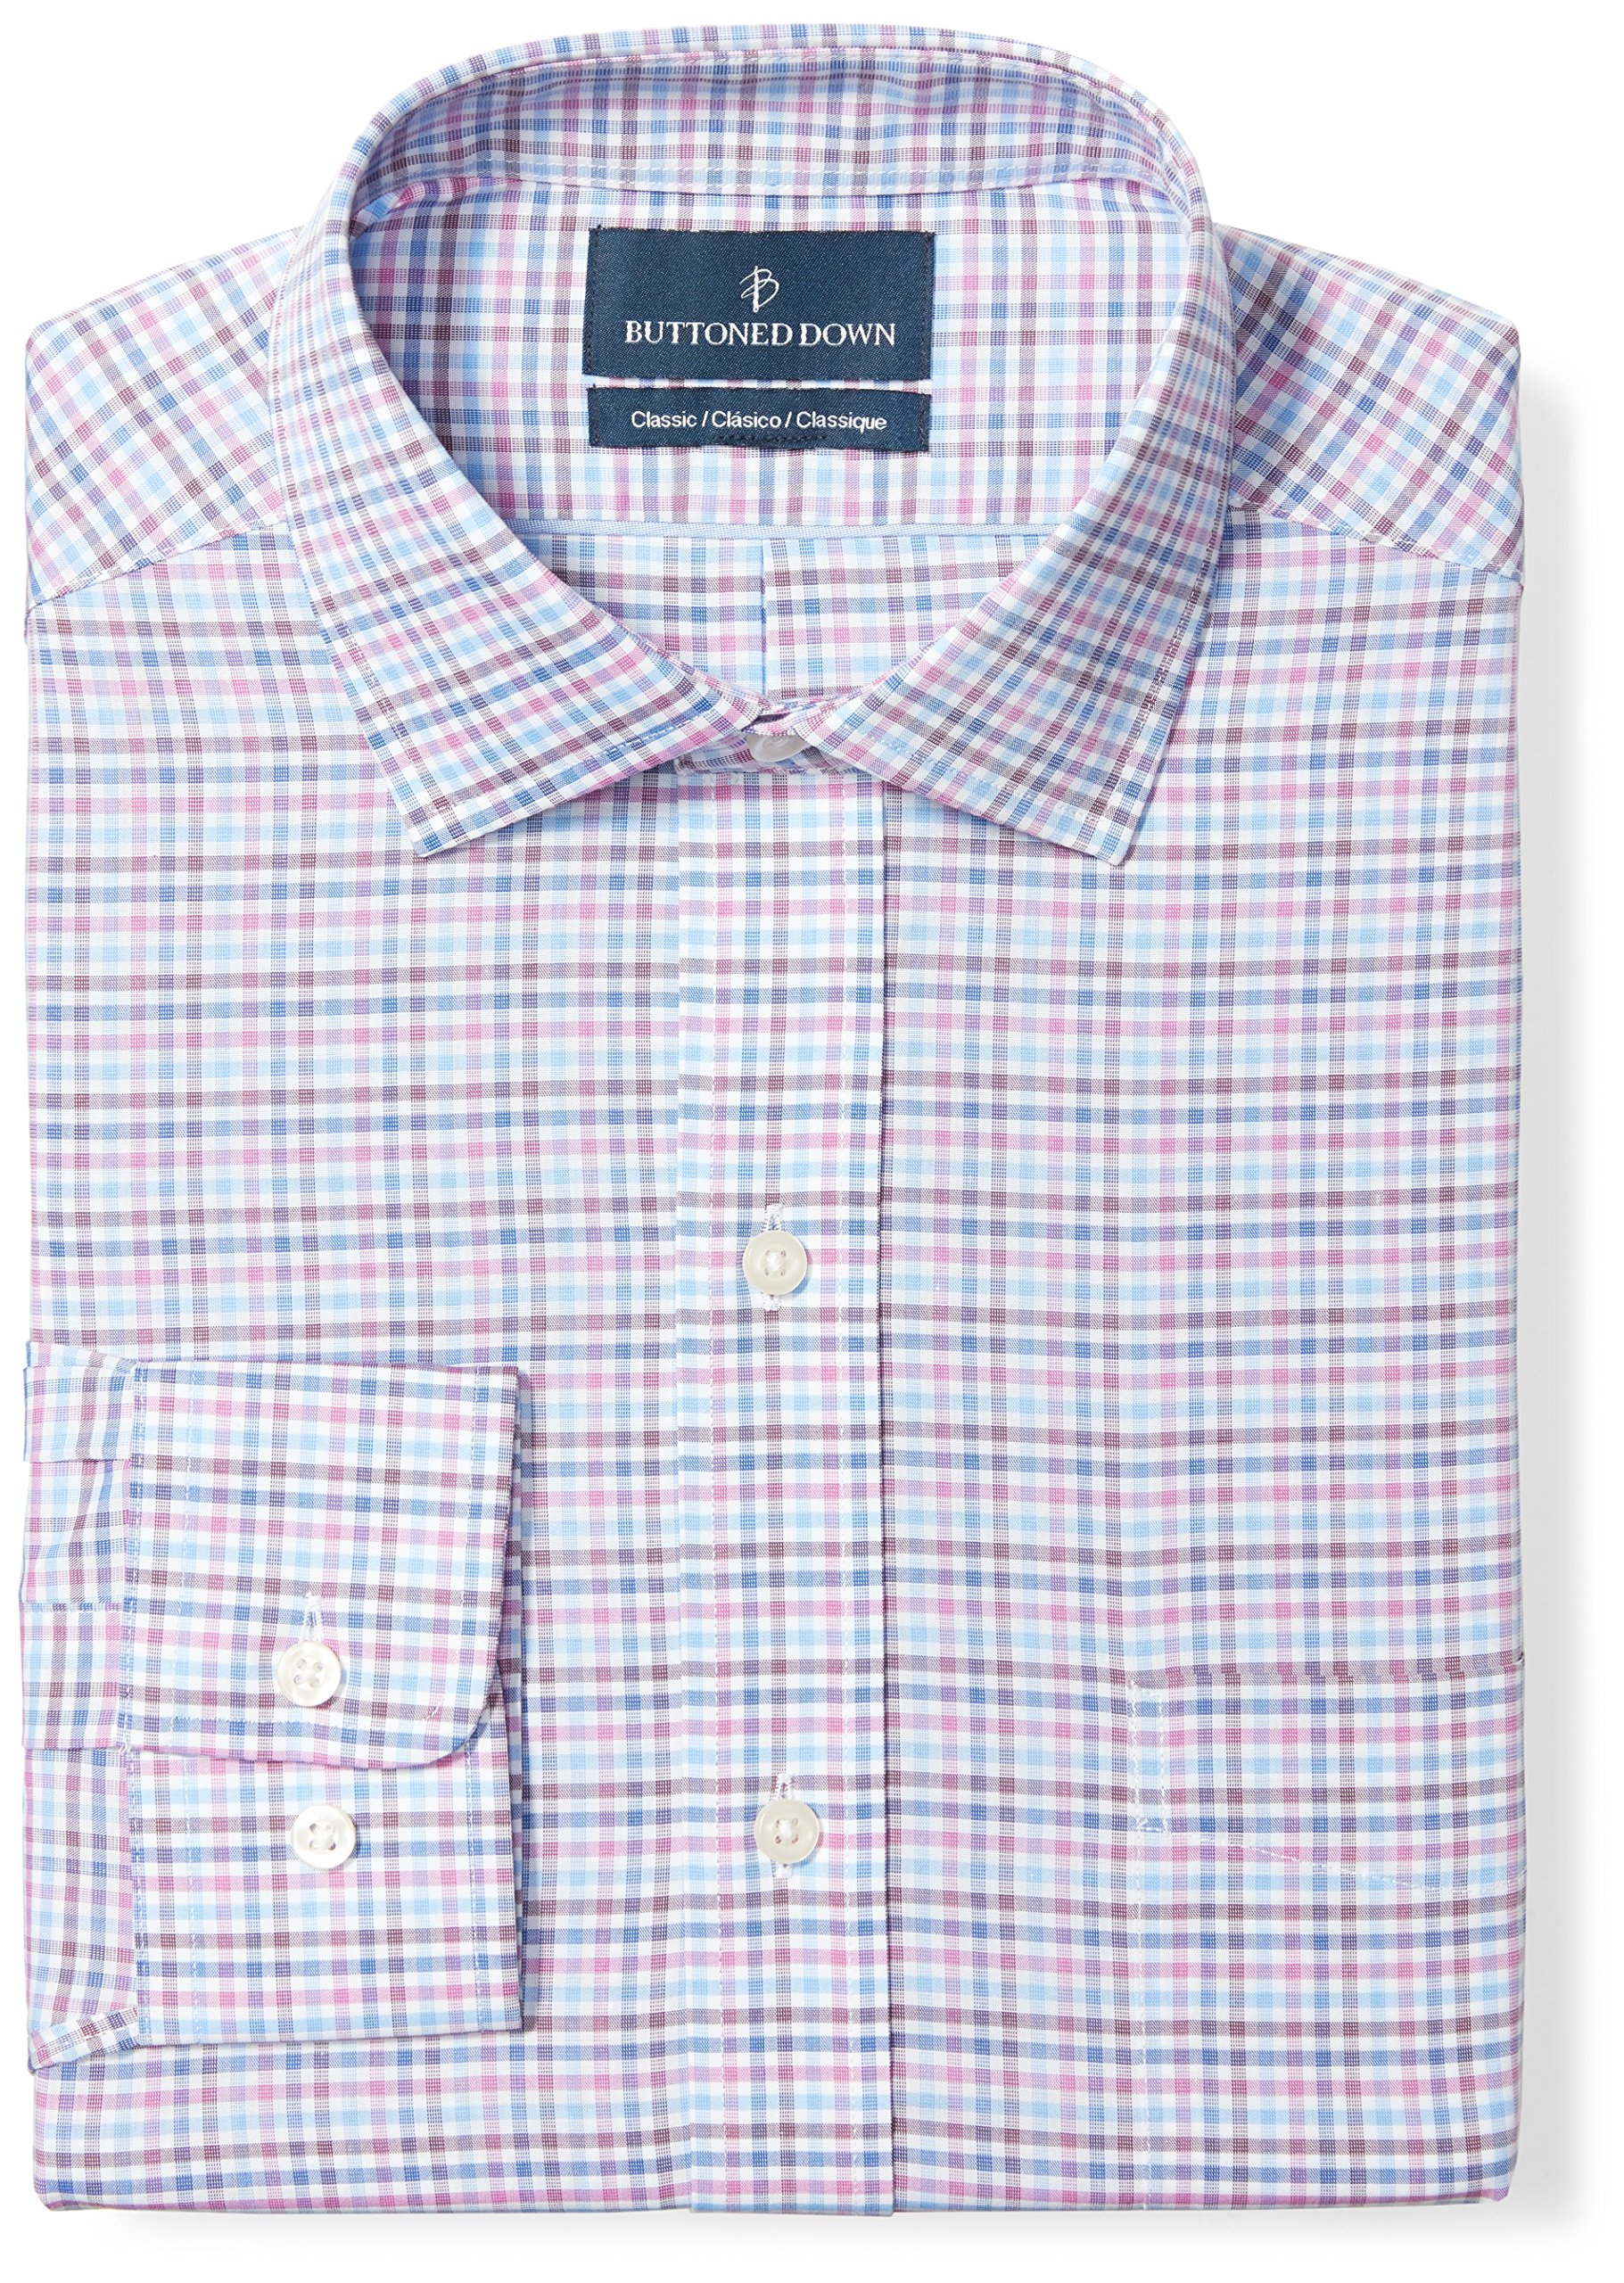 Buttoned Down Men's Classic Fit Spread-Collar Pattern Non-Iron Dress Shirt, Berry/Blue/Navy Check, 16.5'' Neck 35'' Sleeve